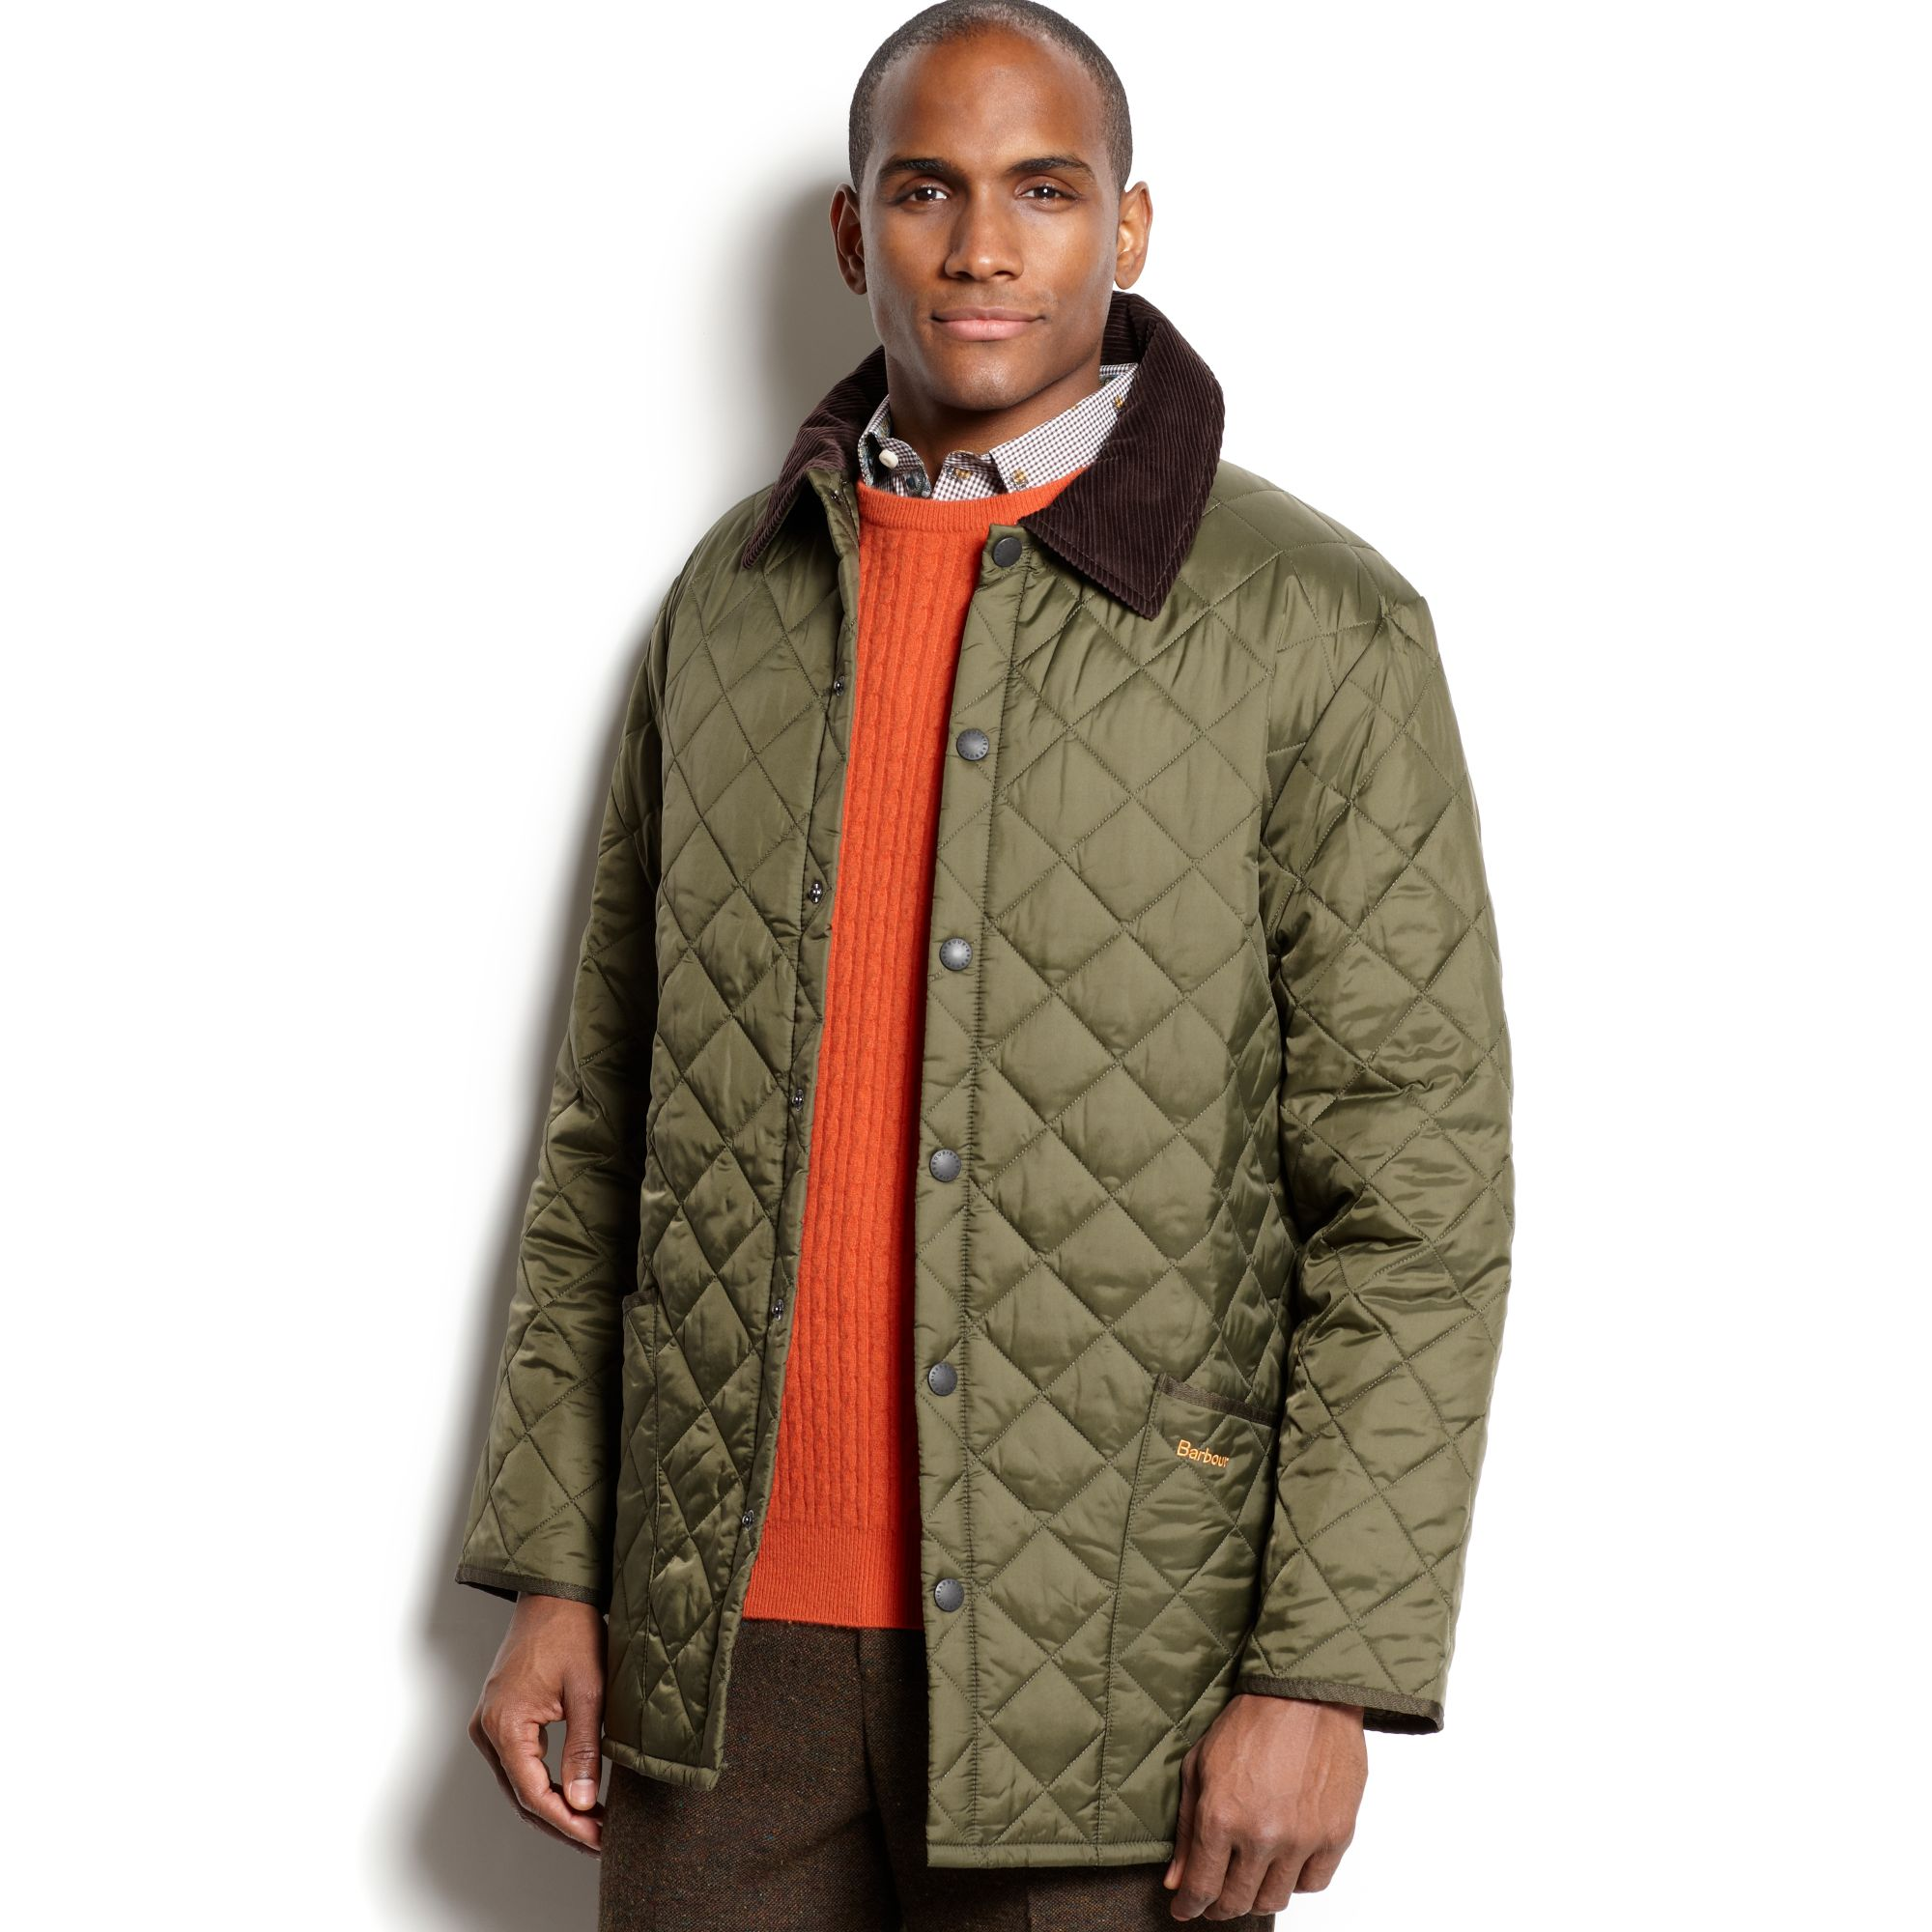 Lyst - Barbour Liddesdale Quilted Jacket in Green for Men 02504030187f